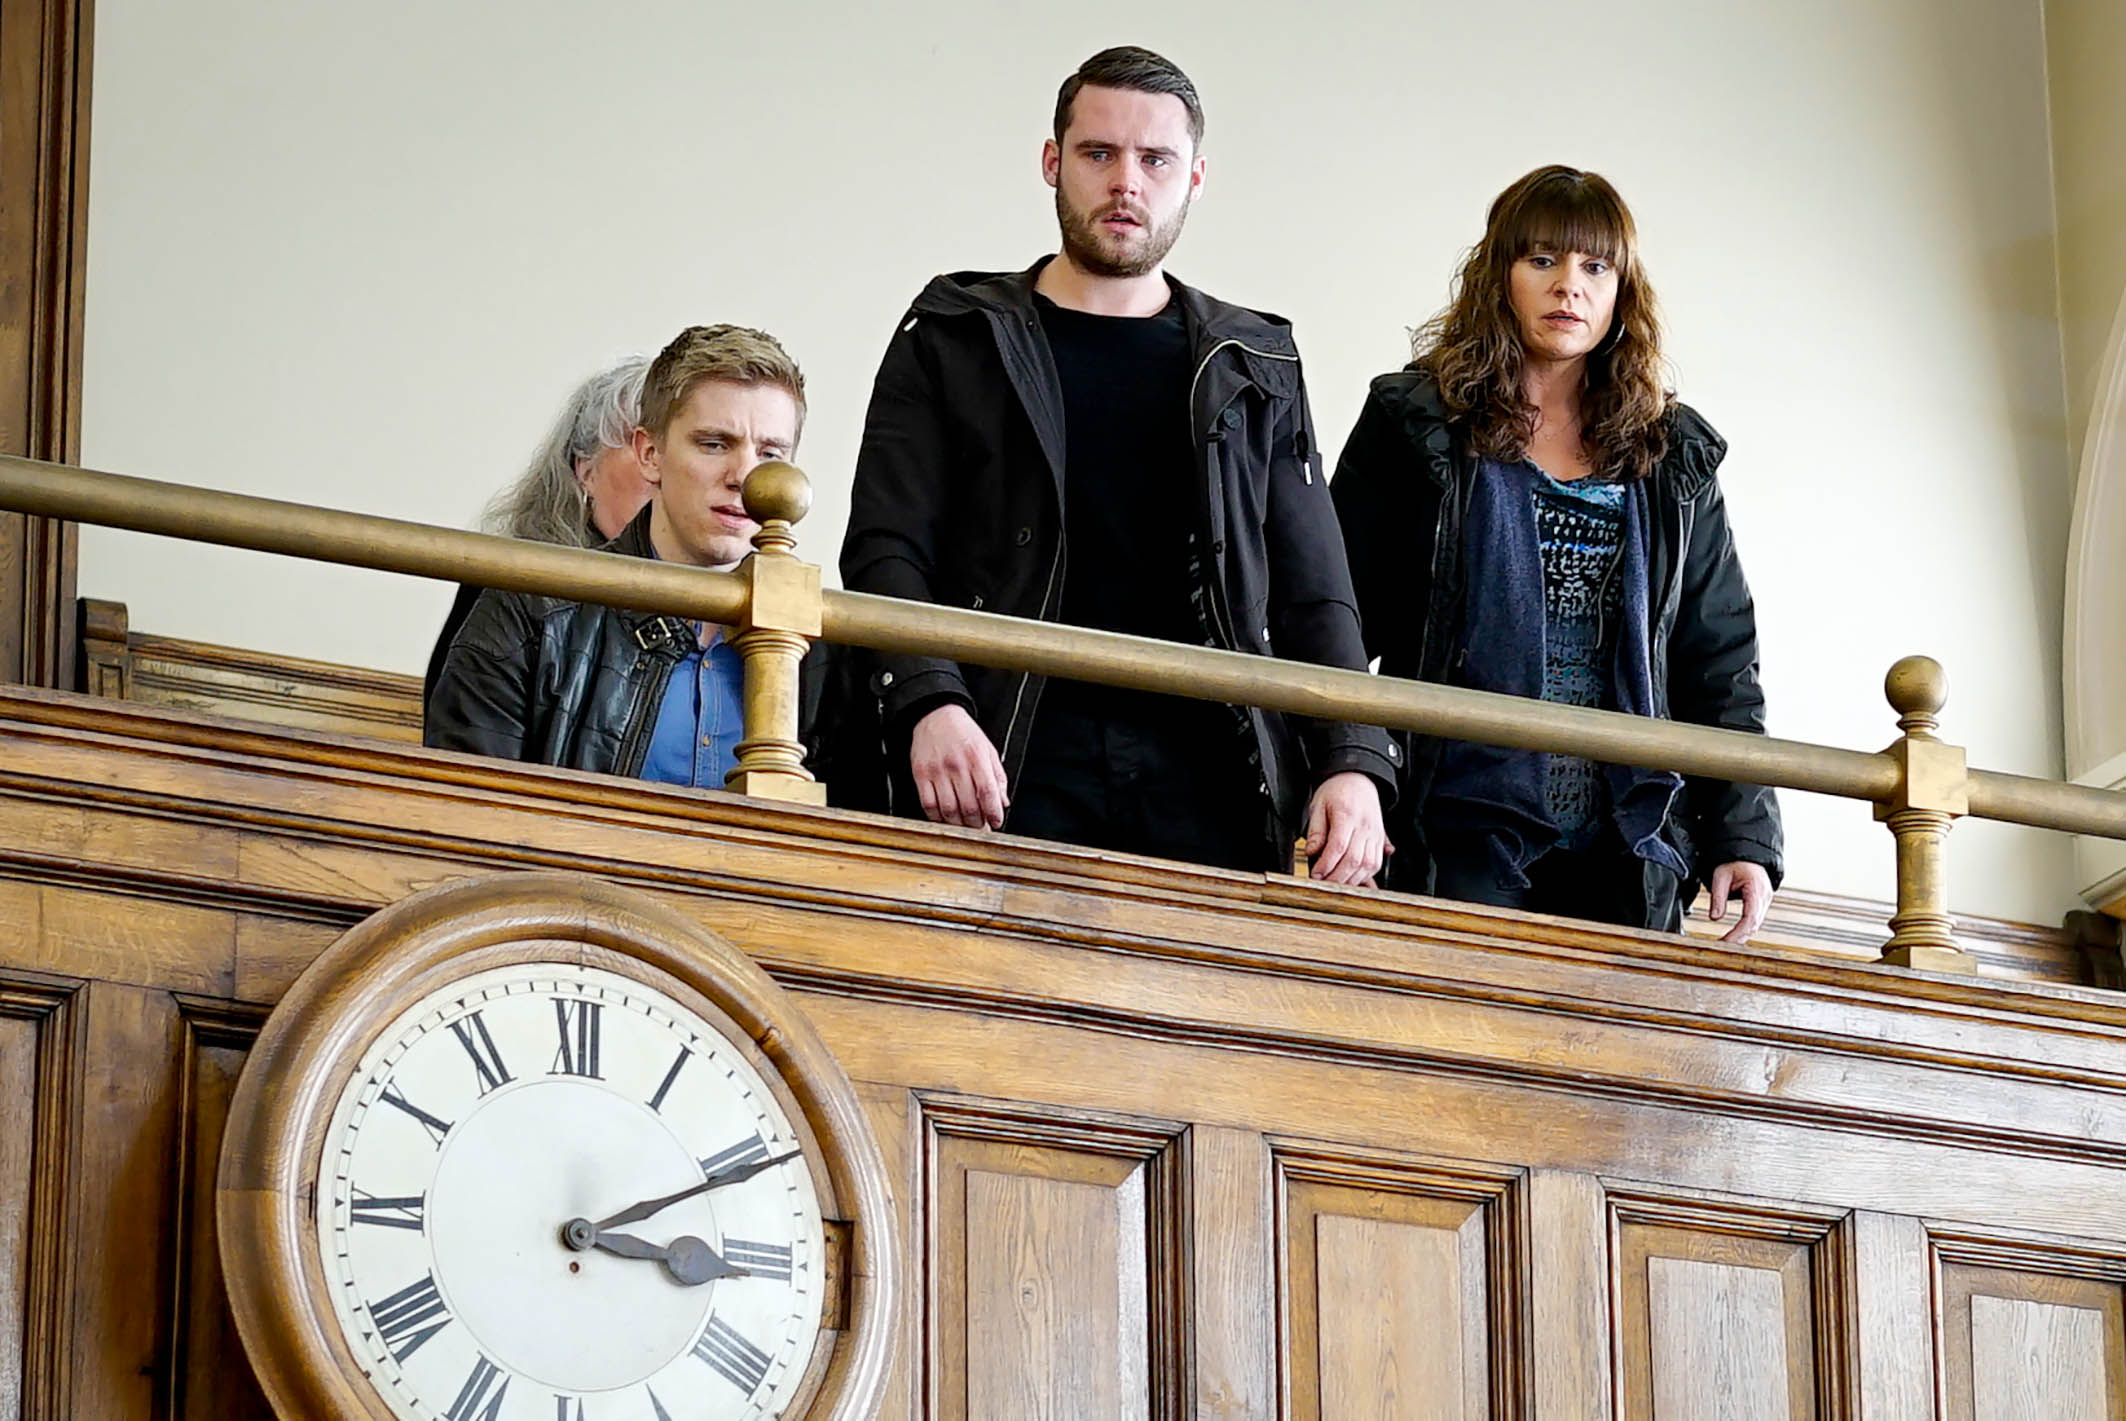 Editorial use only Mandatory Credit: Photo by ITV/REX/Shutterstock (8965273ce) Ep 7451 Wednesday 16 March 2016 Robert Sugden, as played by Ryan Hawley, turns up at court and Aaron Livesy, as played Danny Miller, is unable to hide his happiness, though his face falls when he sees Gordon, as played by Gary Mavers, behaving like he's seriously ill for the court's benefit. Gordon strikes a pitiful figure and pretends to collapse. Aaron can't believe it but will his father's scheming help Gordon's case? 'Emmerdale' TV Series - Mar 2016